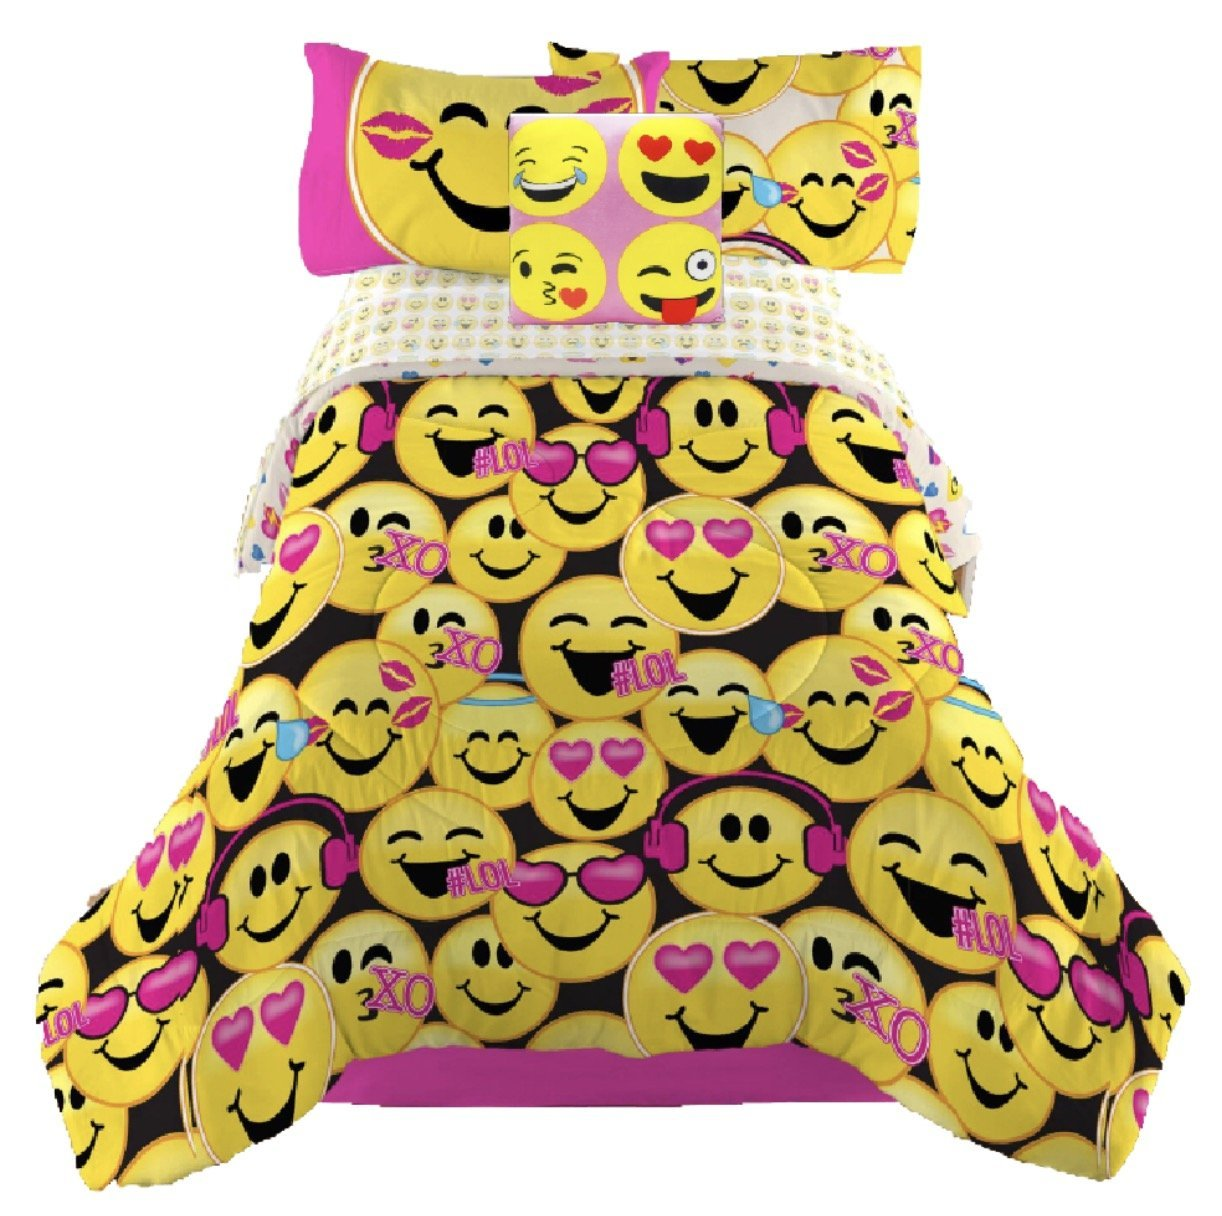 Emoji Complete Girls Bedding Comforter Set with Decorative Square Throw Pillow - Twin